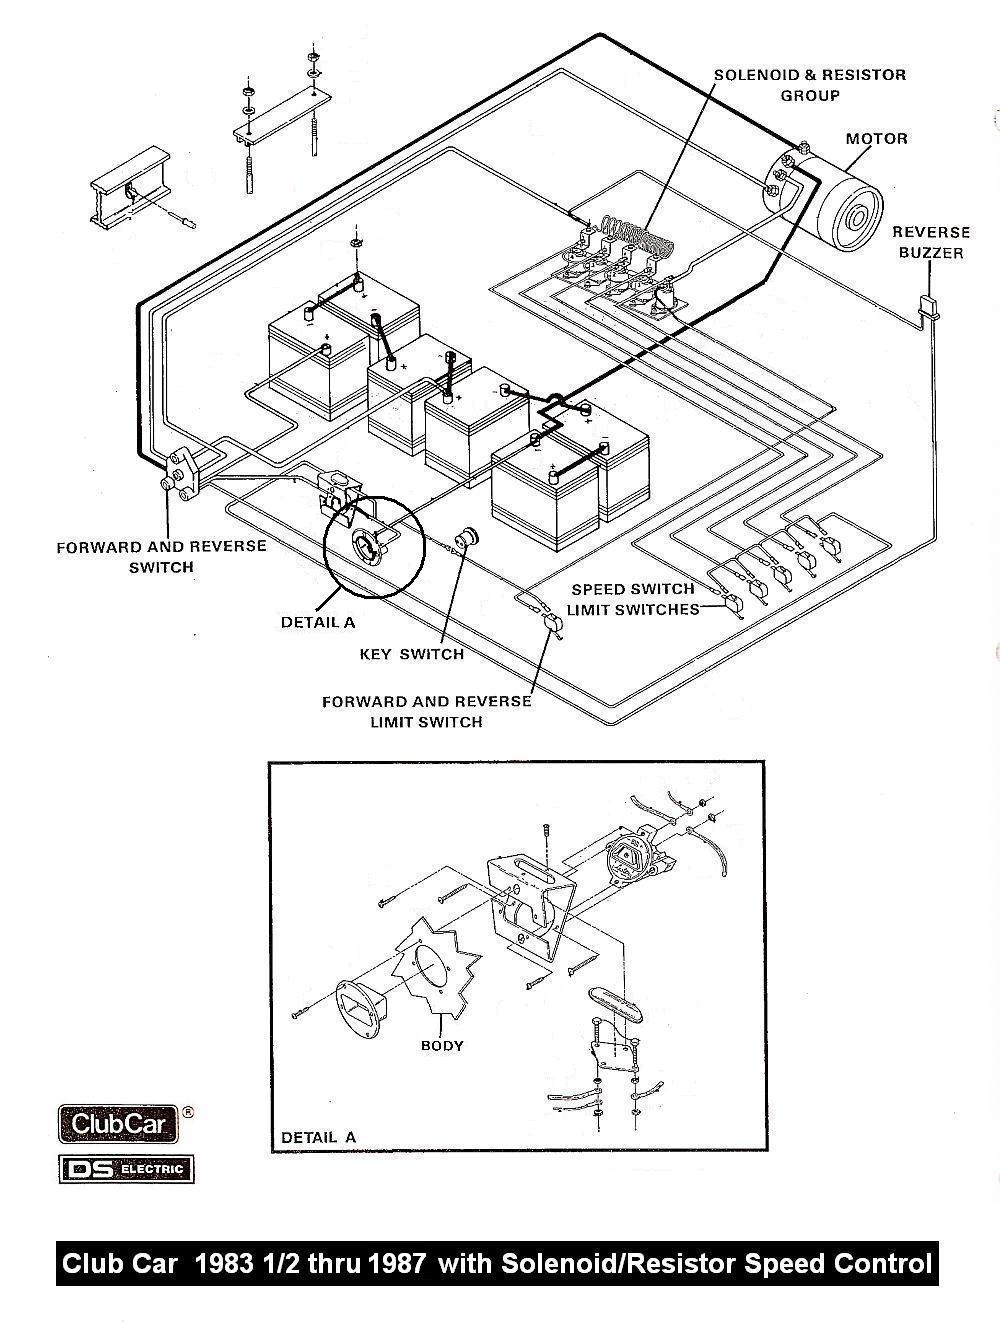 hight resolution of club car solenoid wiring diagram for 2006 wiring diagram todays rh 1 1 14 1813weddingbarn com 1999 ez go txt wiring diagram golf cart solenoid wiring